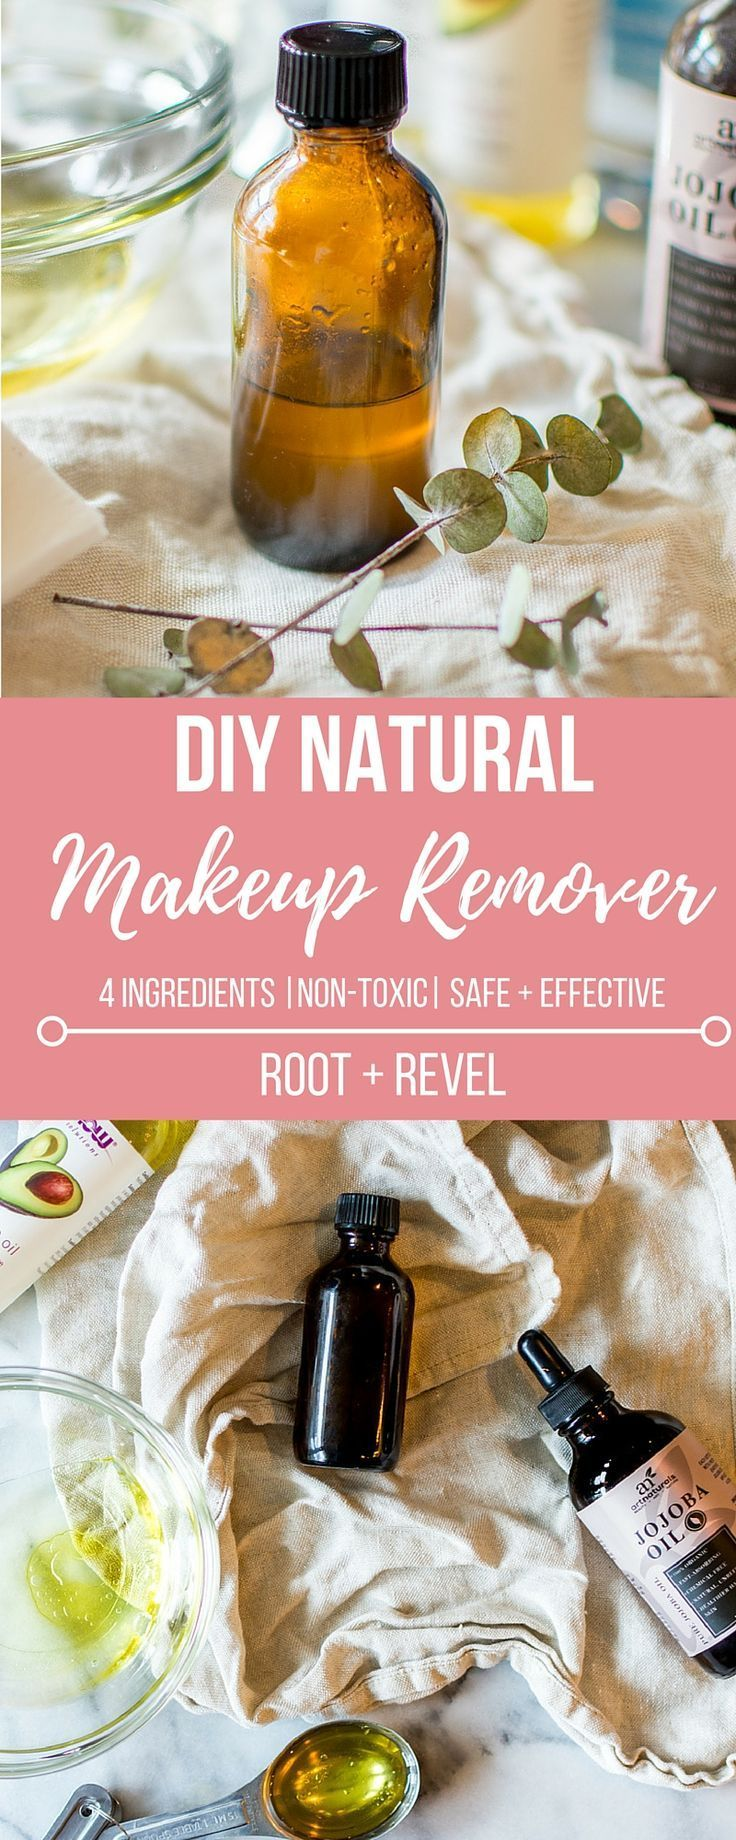 In less than 5 minutes and with just 4 natural ingredients, you can make this DIY homemade makeup remover that's safe, affordable and effective!